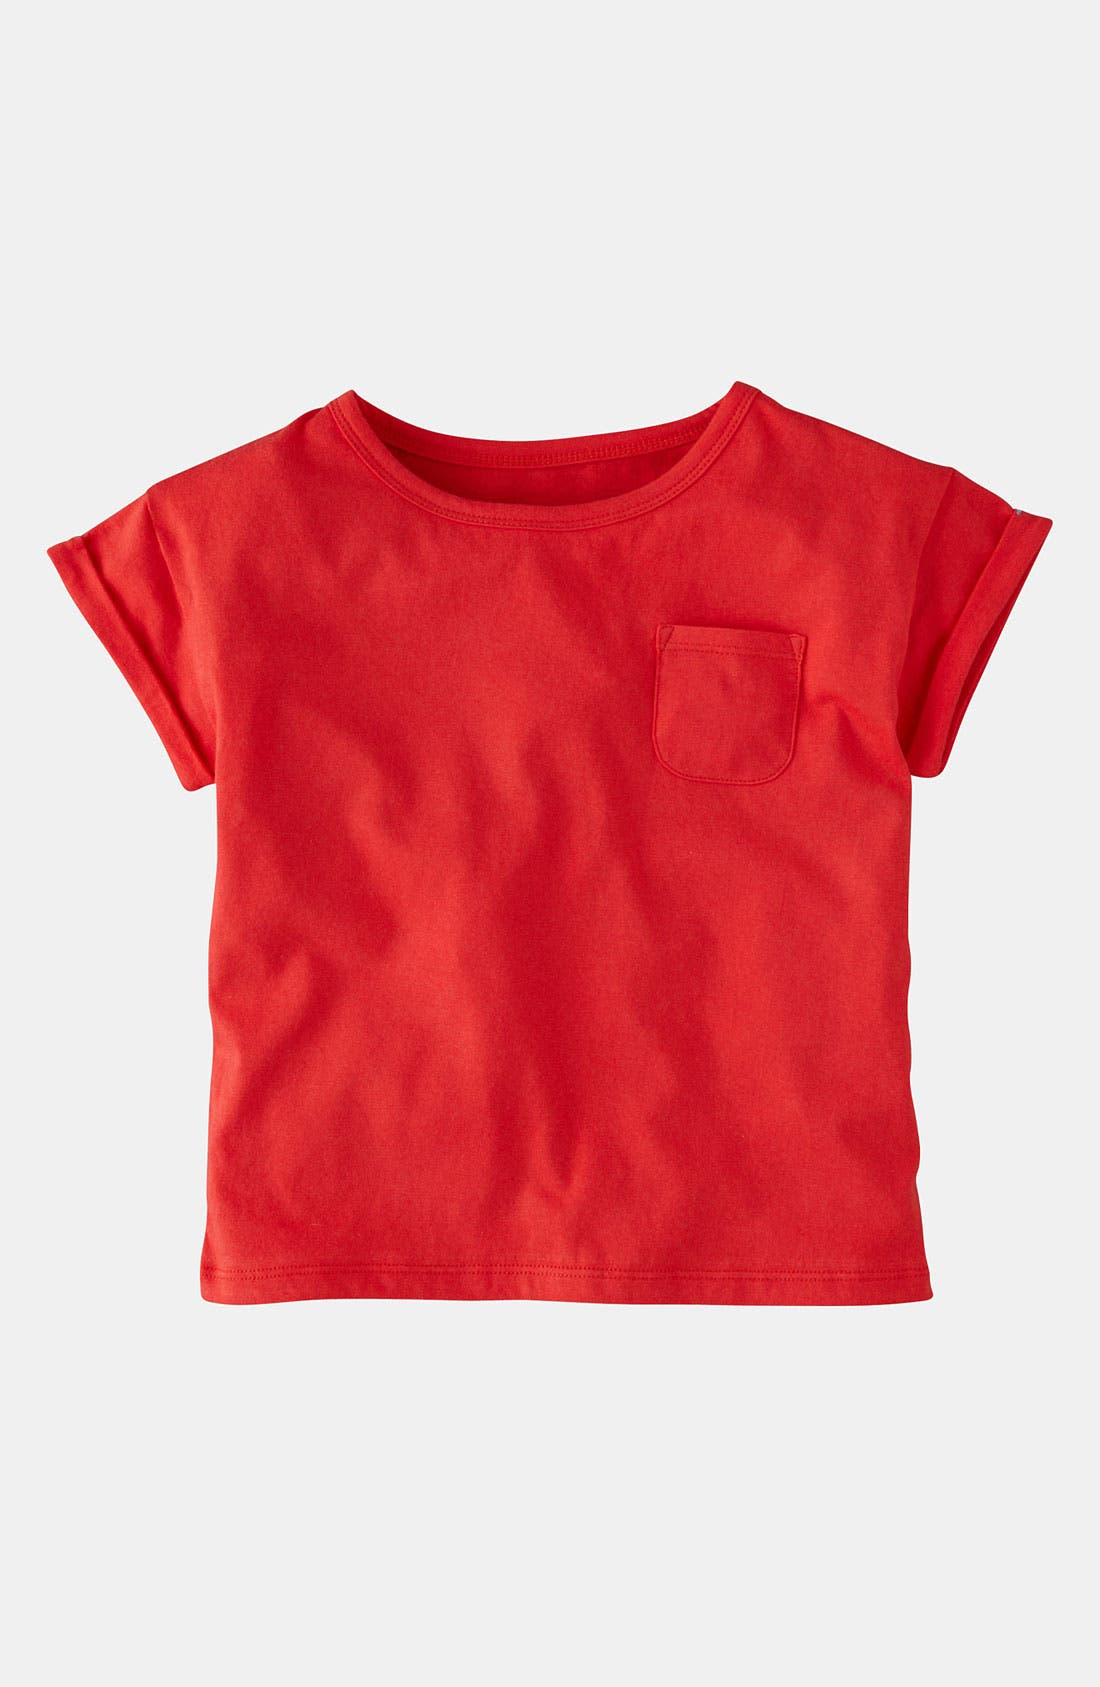 Alternate Image 1 Selected - Mini Boden 'Slouchy' Tee (Little Girls & Big Girls)